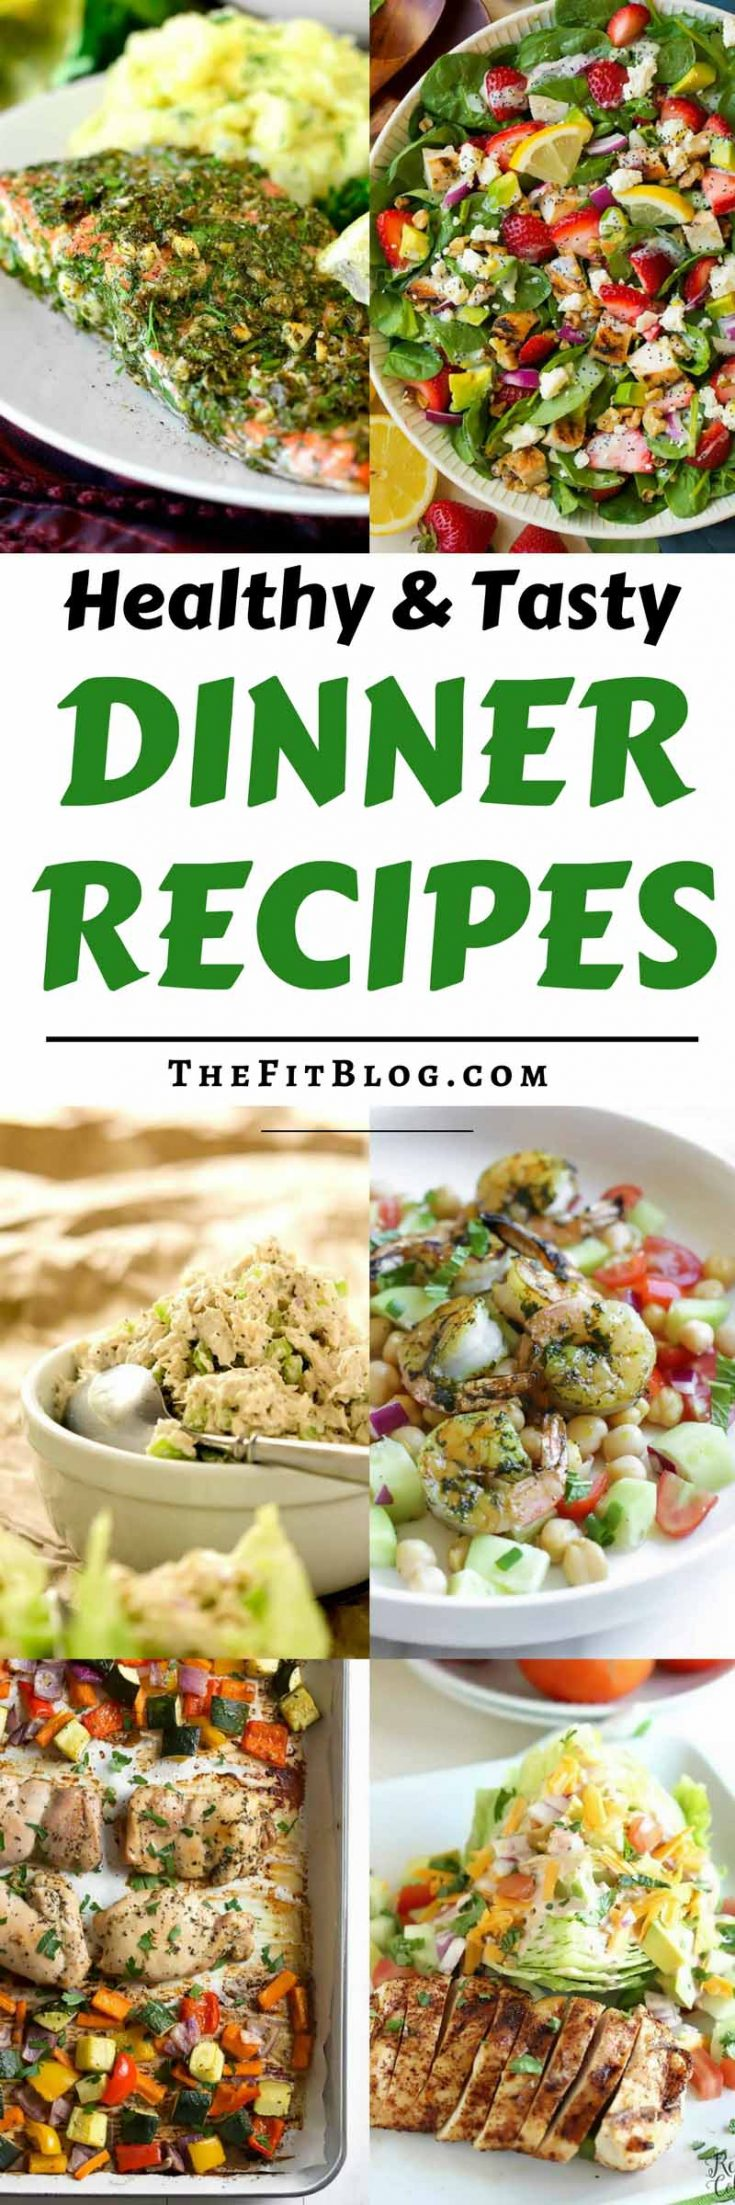 10 Healthy Dinner Recipes for Diabetics